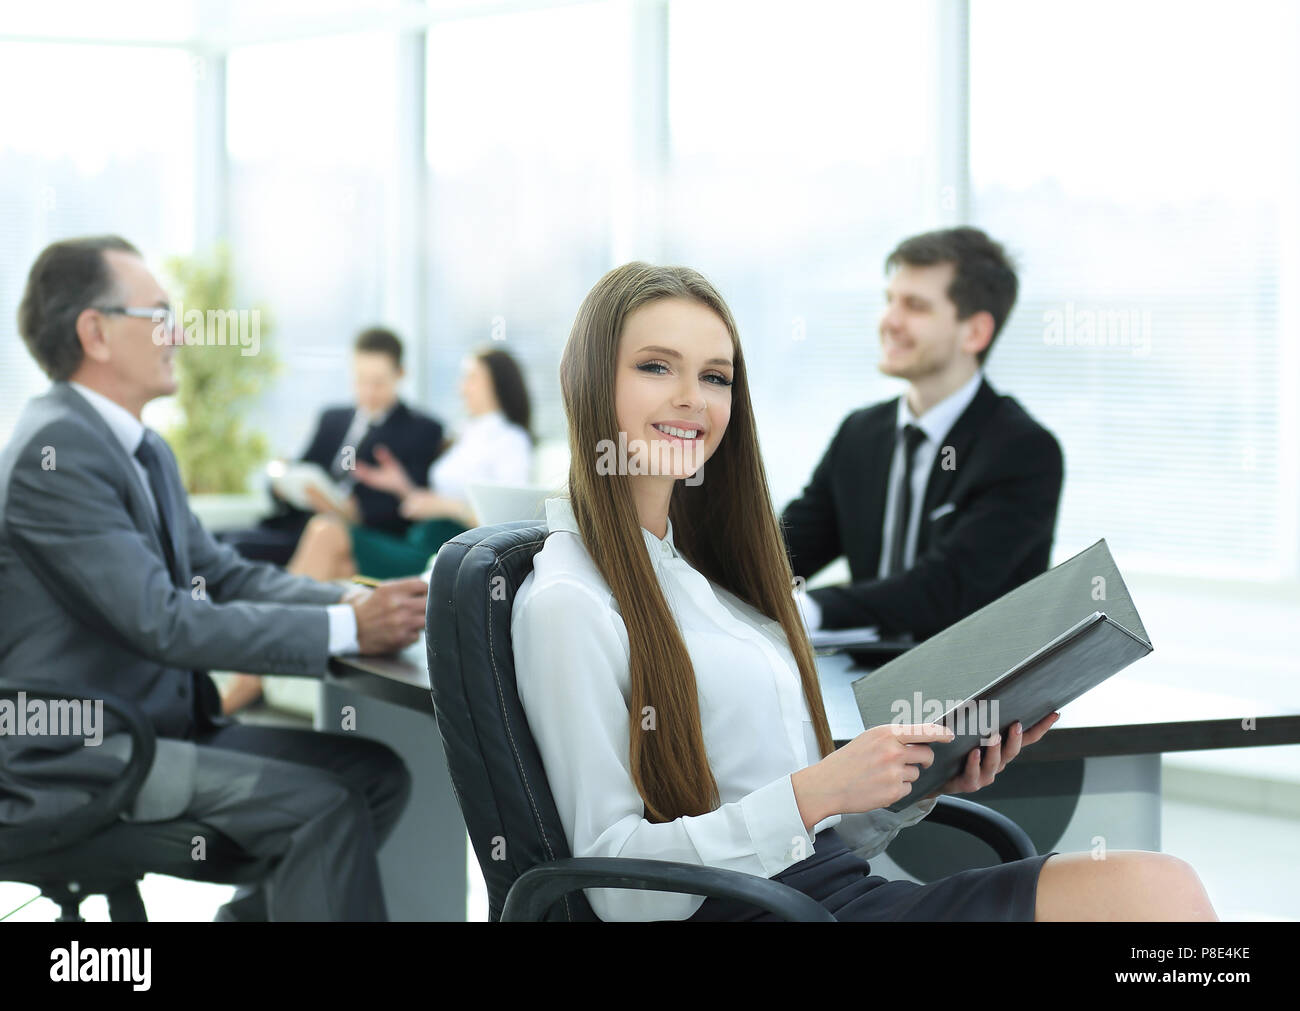 Executive business woman with clipboard modern office - Stock Image